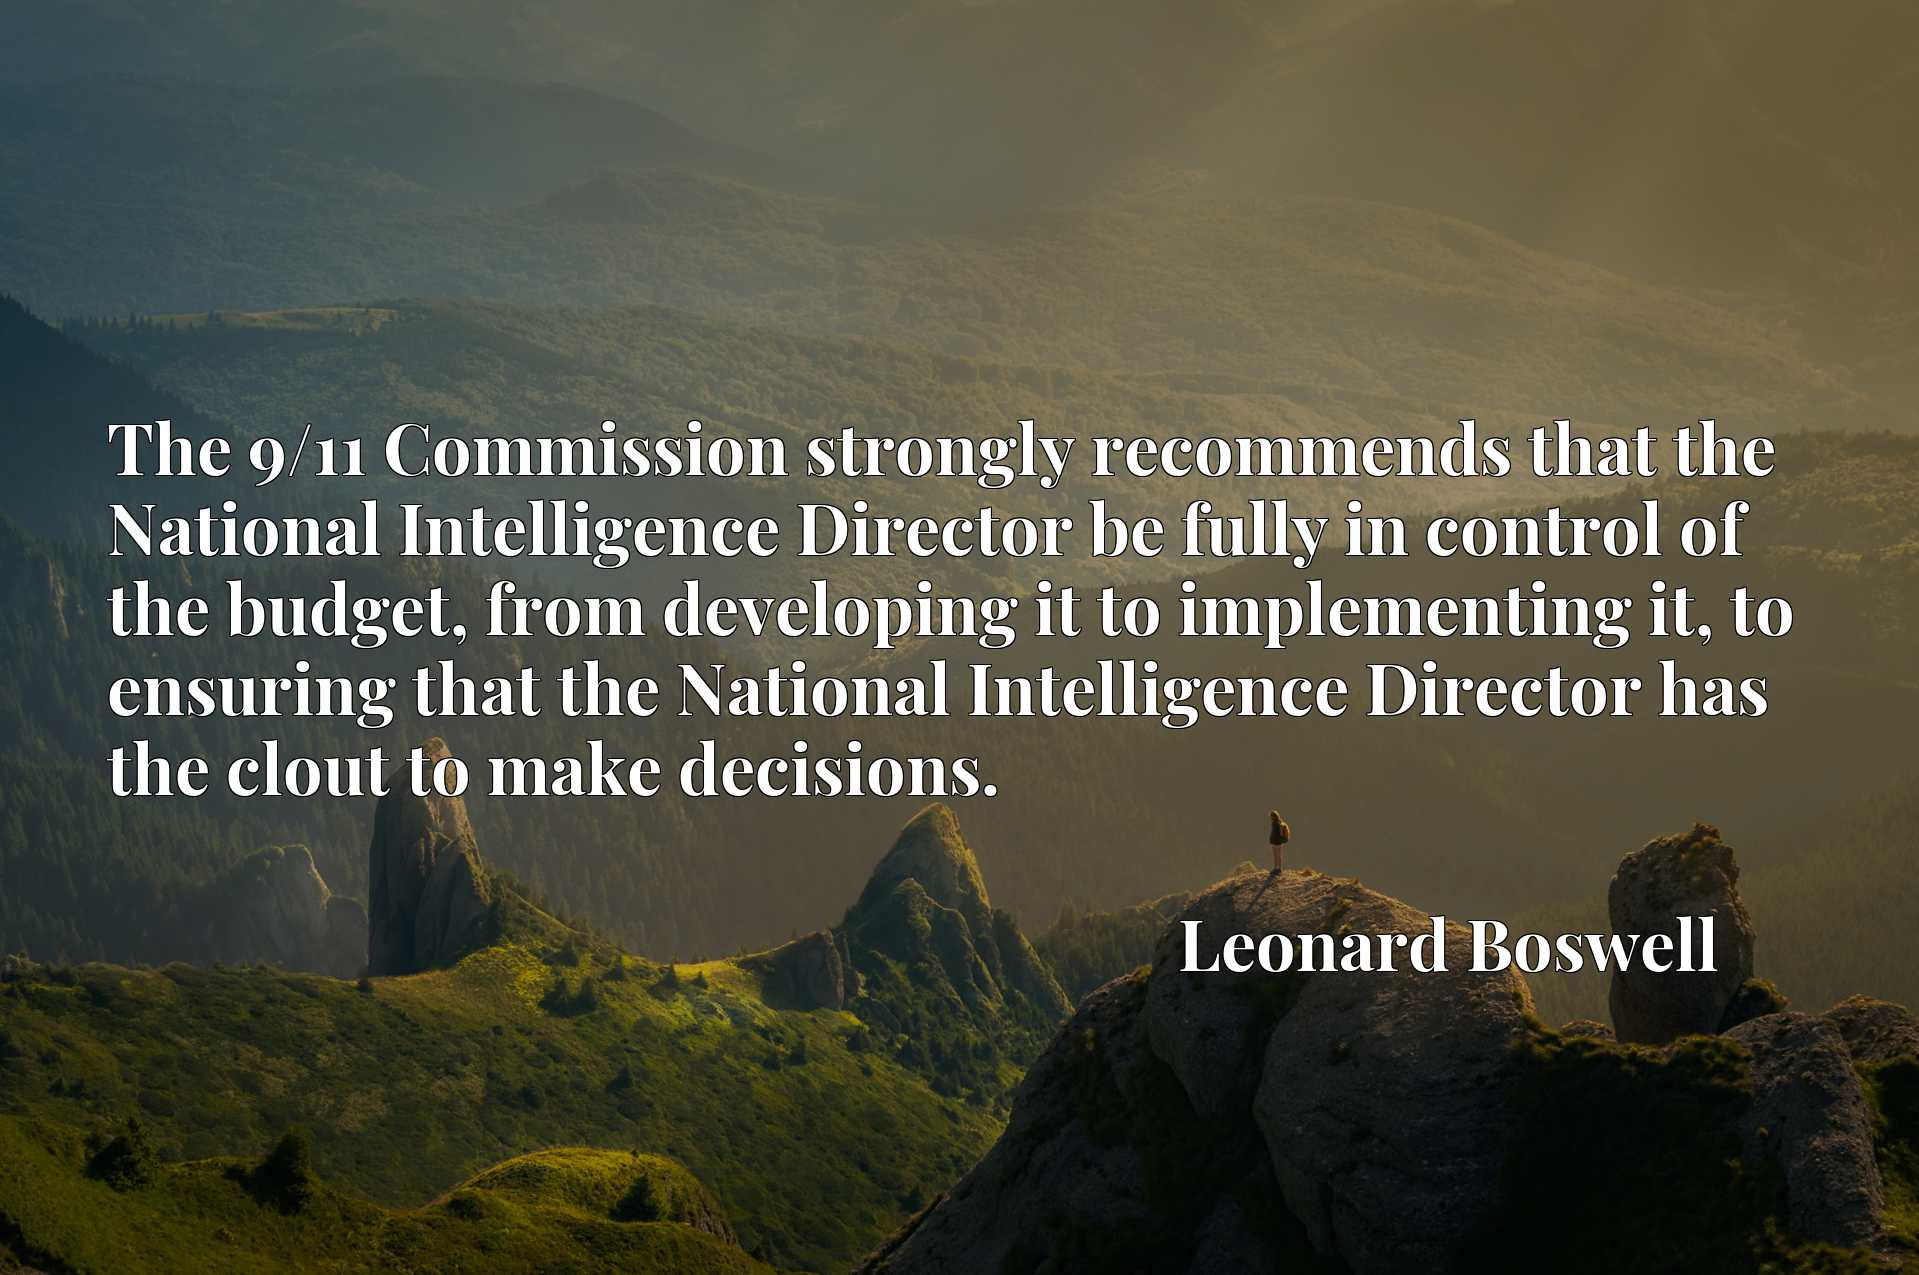 The 9/11 Commission strongly recommends that the National Intelligence Director be fully in control of the budget, from developing it to implementing it, to ensuring that the National Intelligence Director has the clout to make decisions.